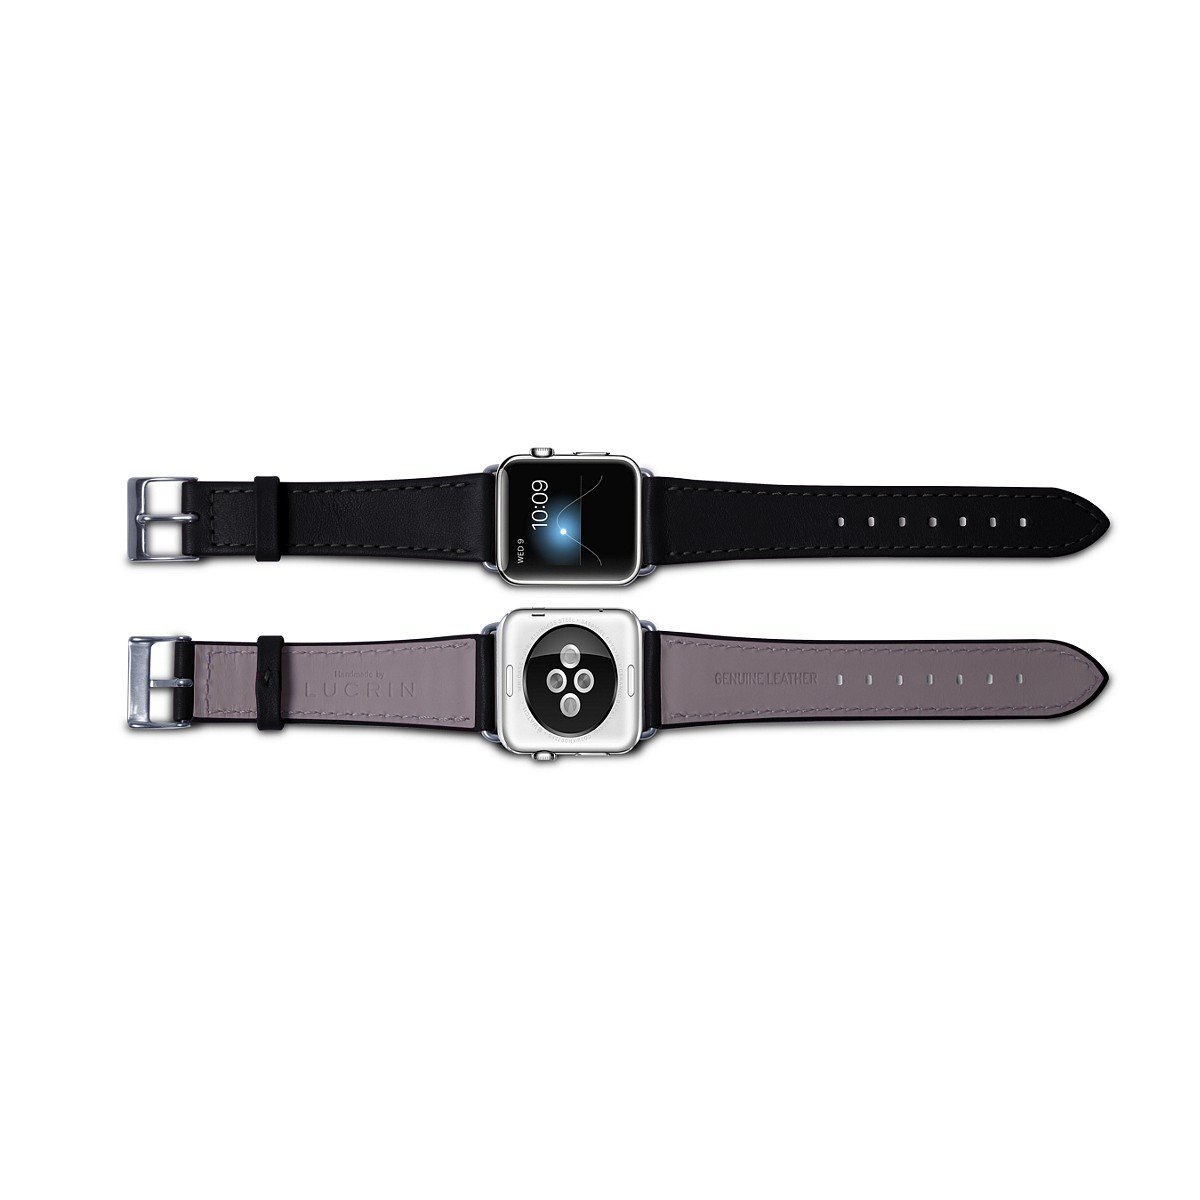 Lucrin - Apple Watch band 38 mm – Elegance - Black - Smooth Leather by Lucrin (Image #4)